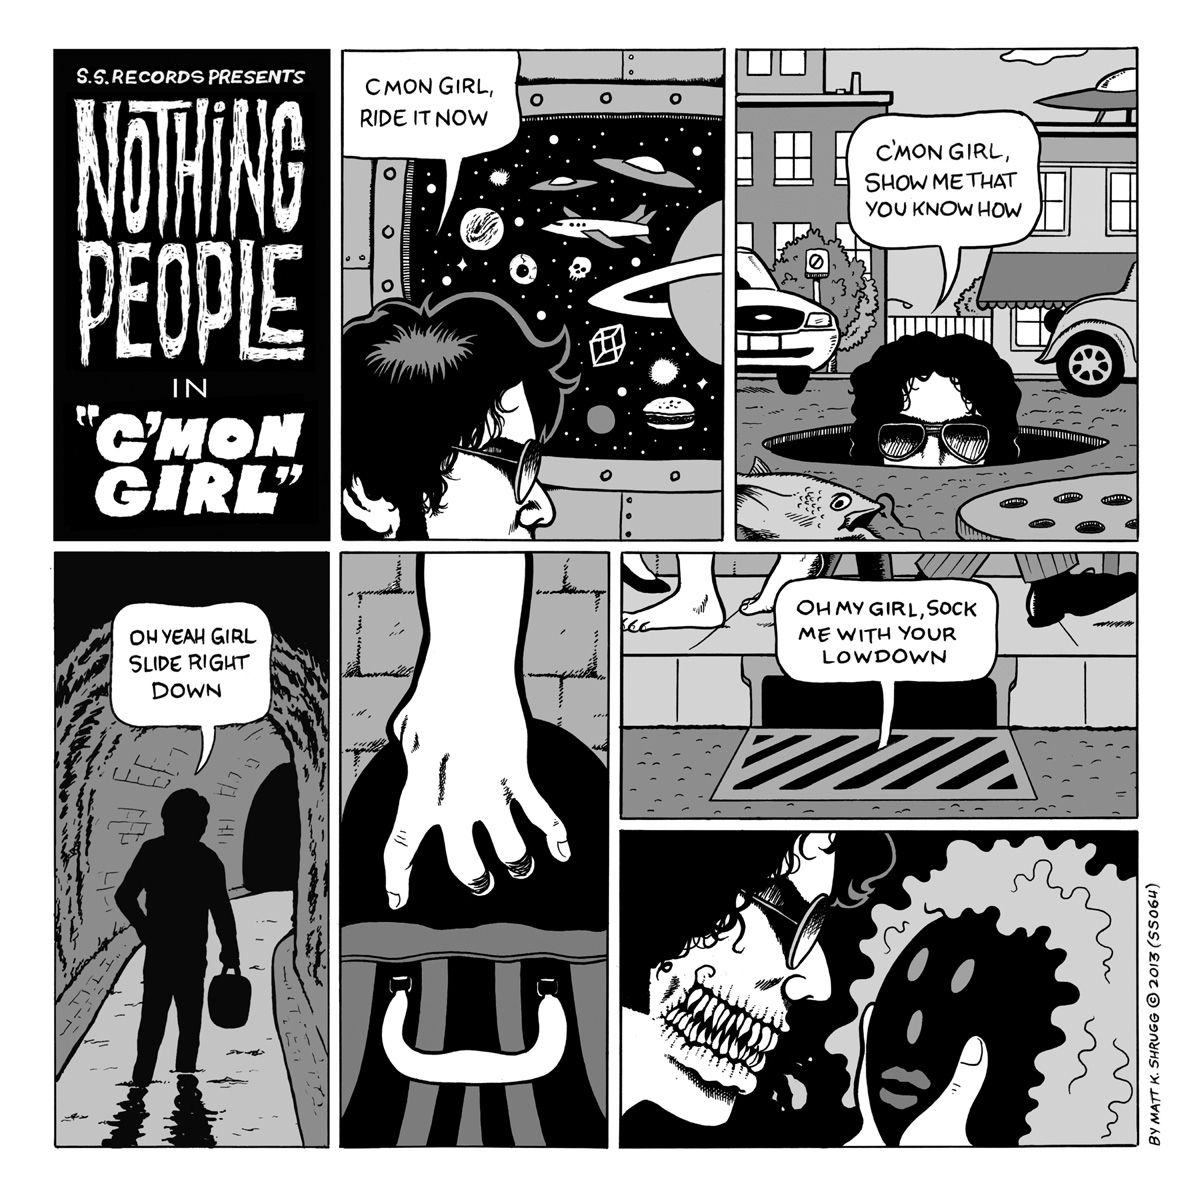 "Nothing People - C'mon Girl 7"" (S.S. Records)"